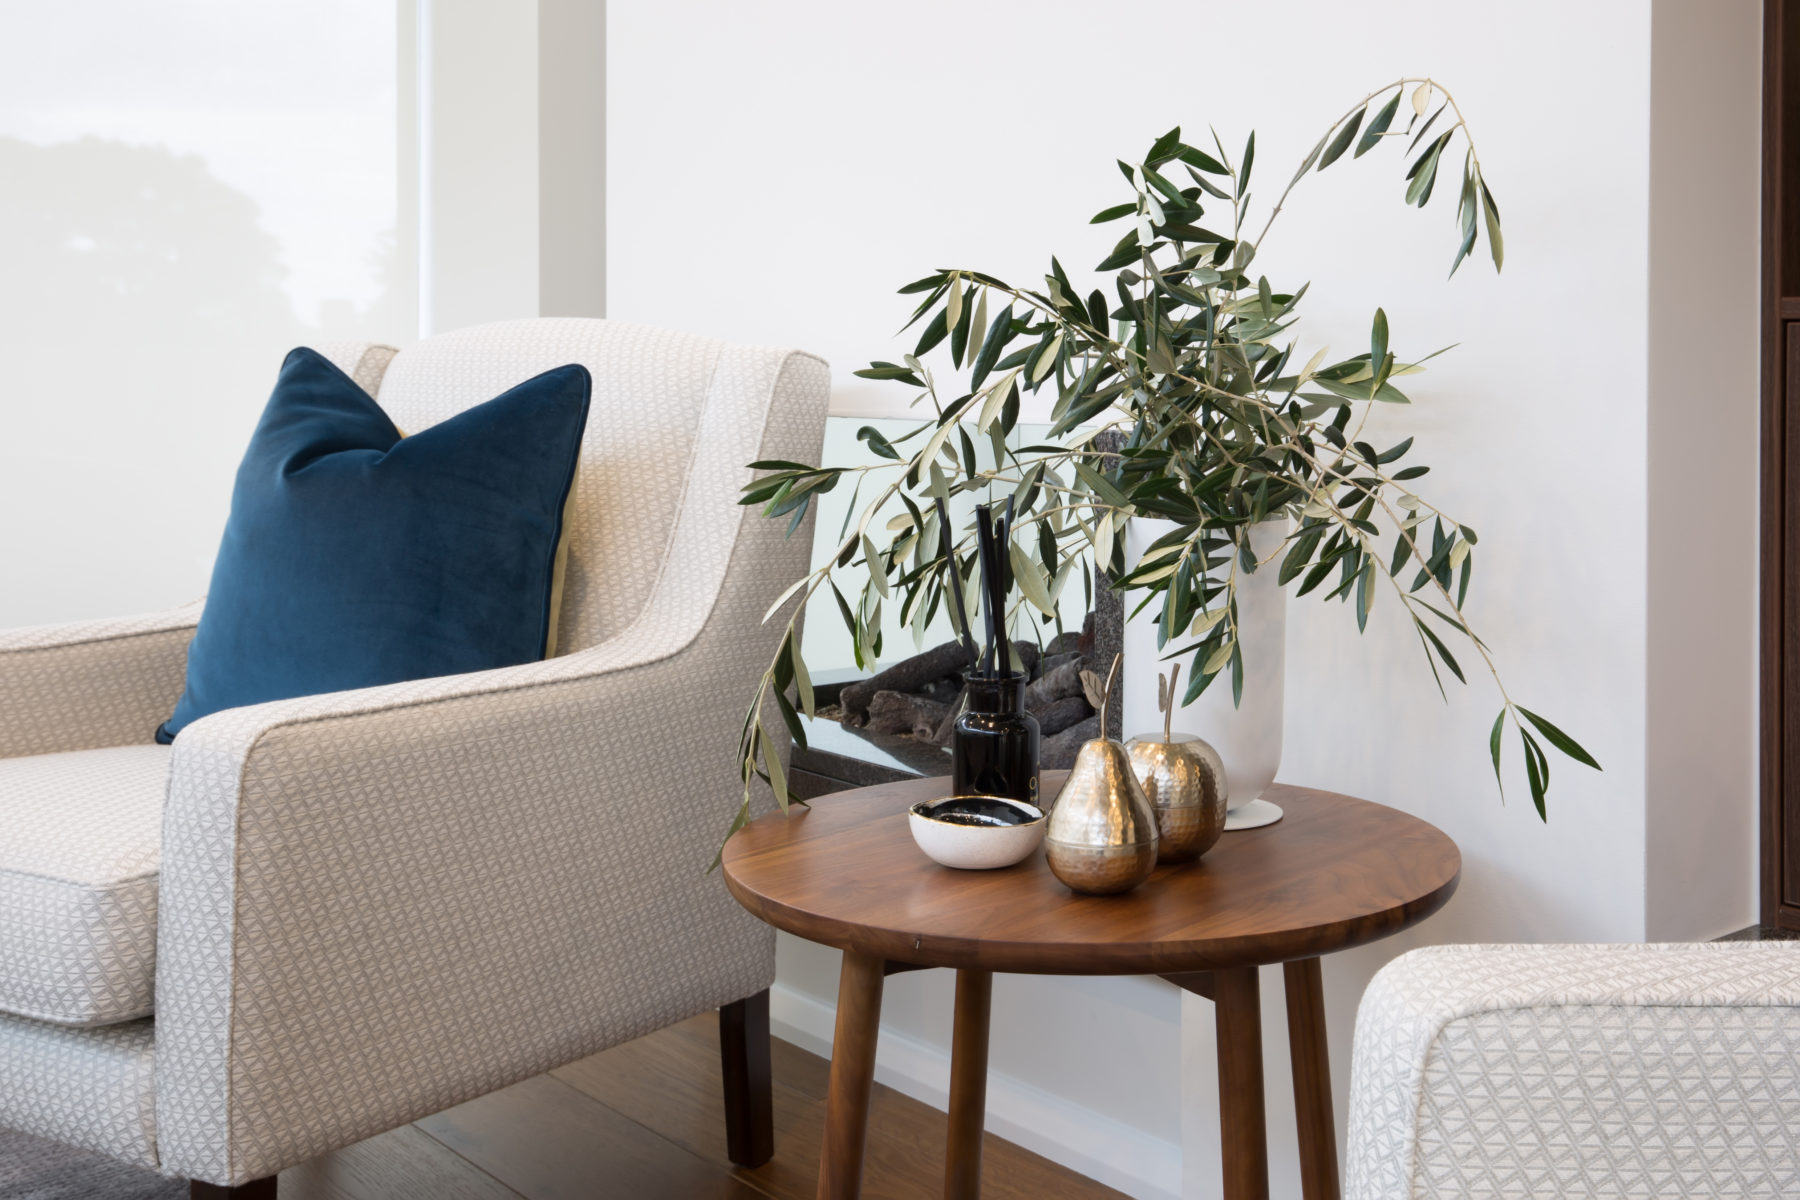 contemporary seating area with relaxed seating and side table styling with plants